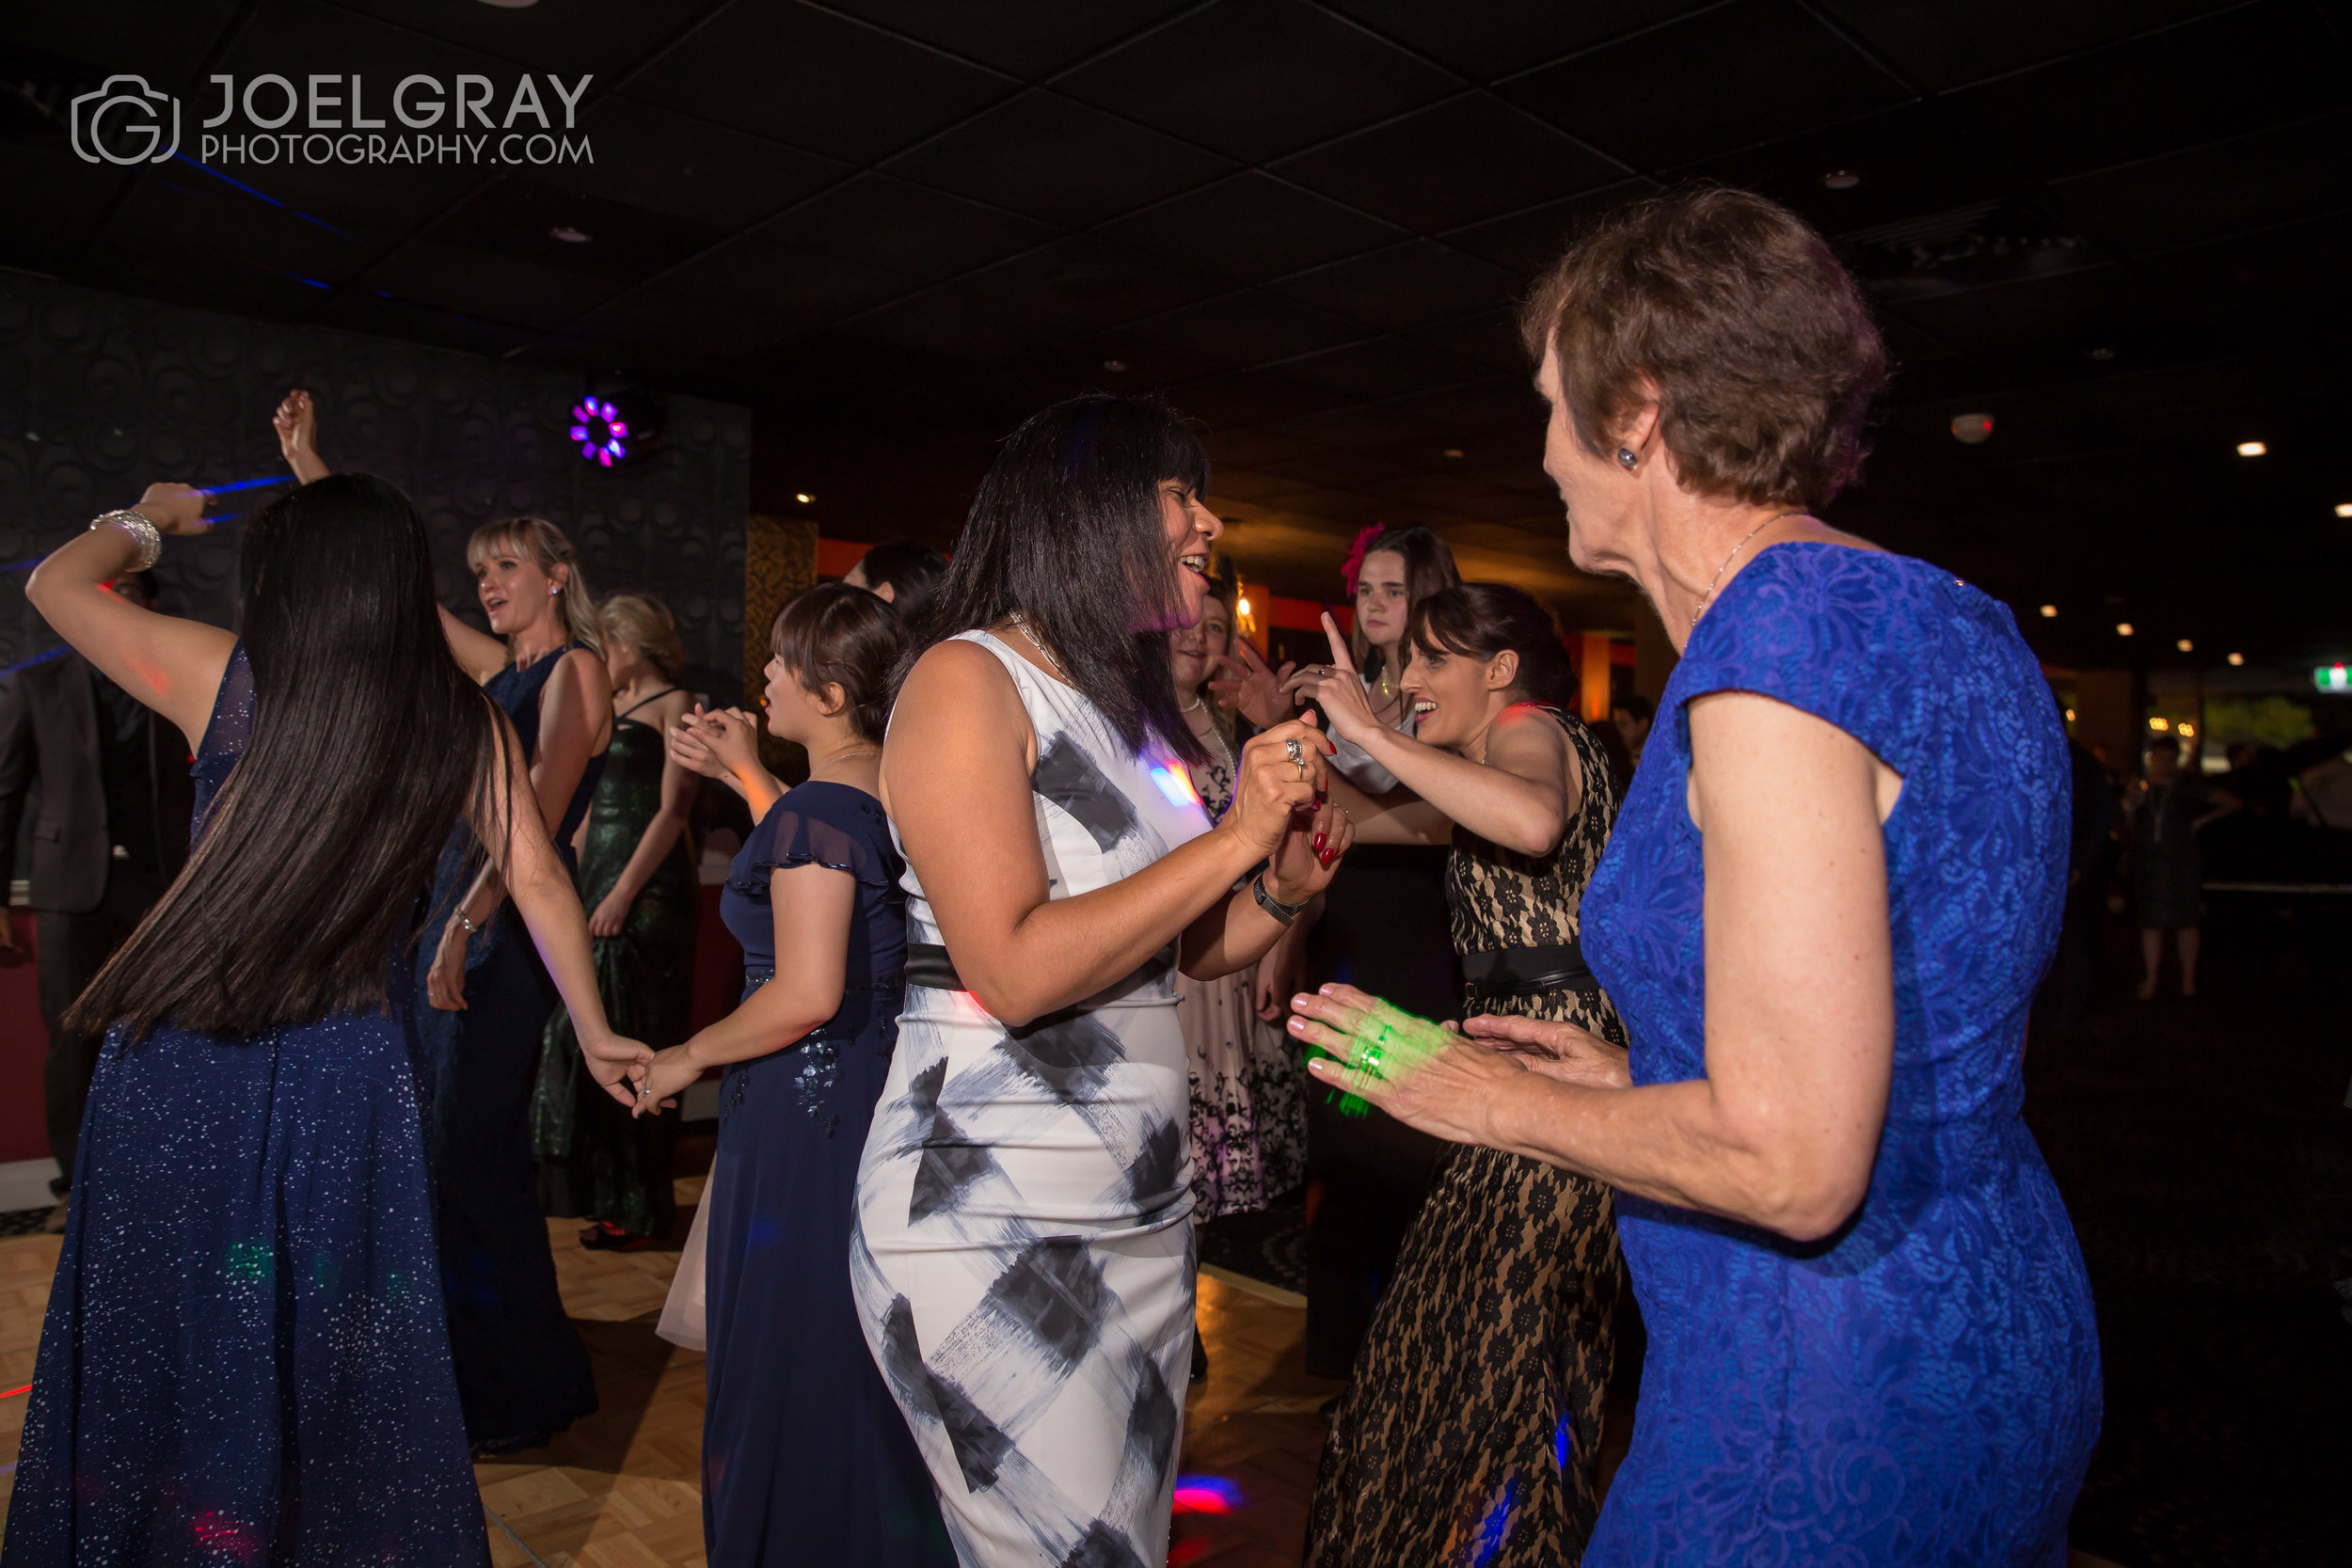 work-function-events-photographer-photography-sydney-1800829994